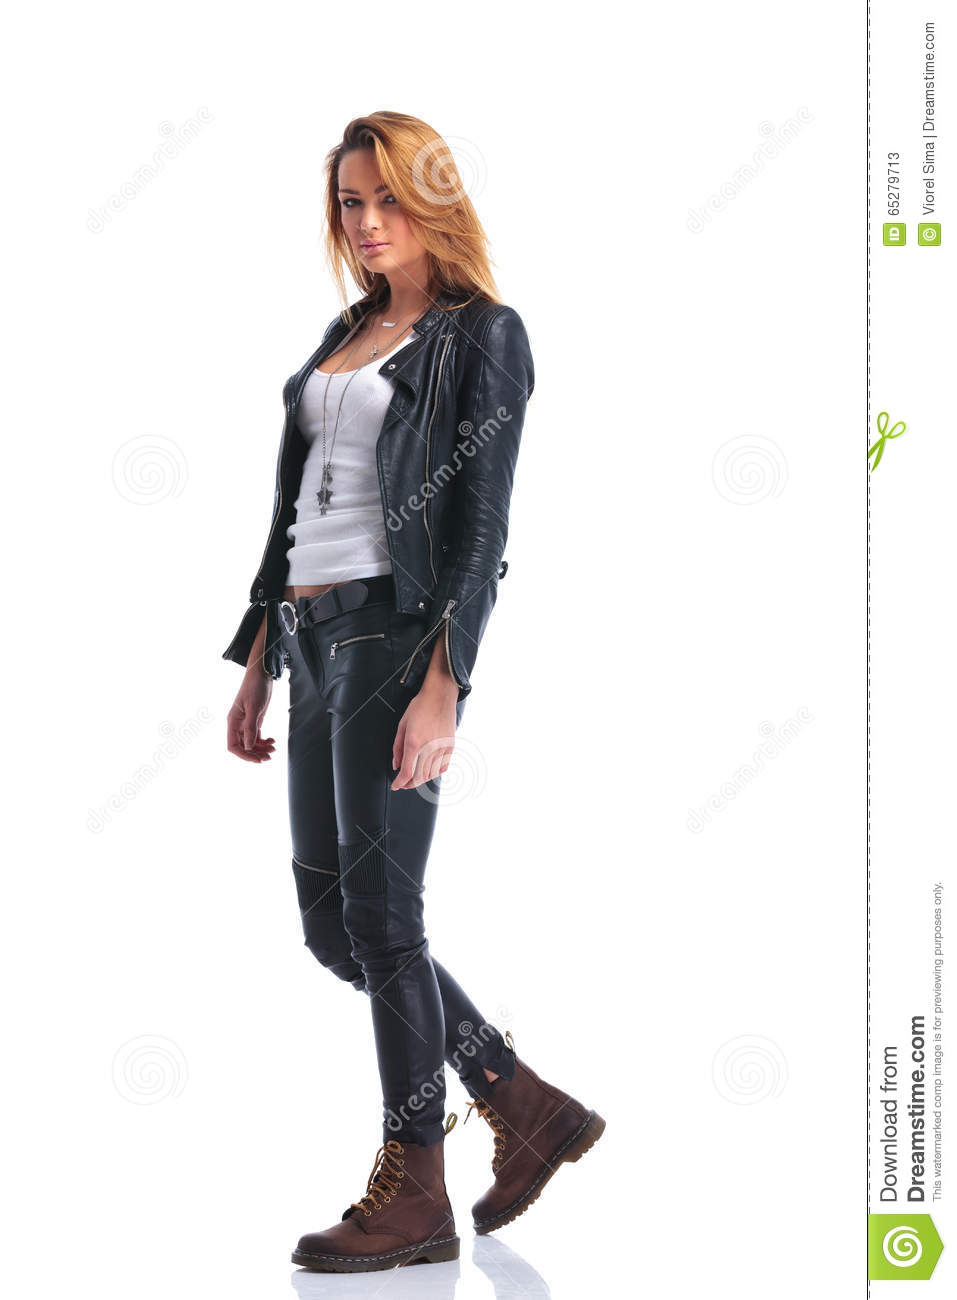 Model pose in leather jacket while walking in studio and looking